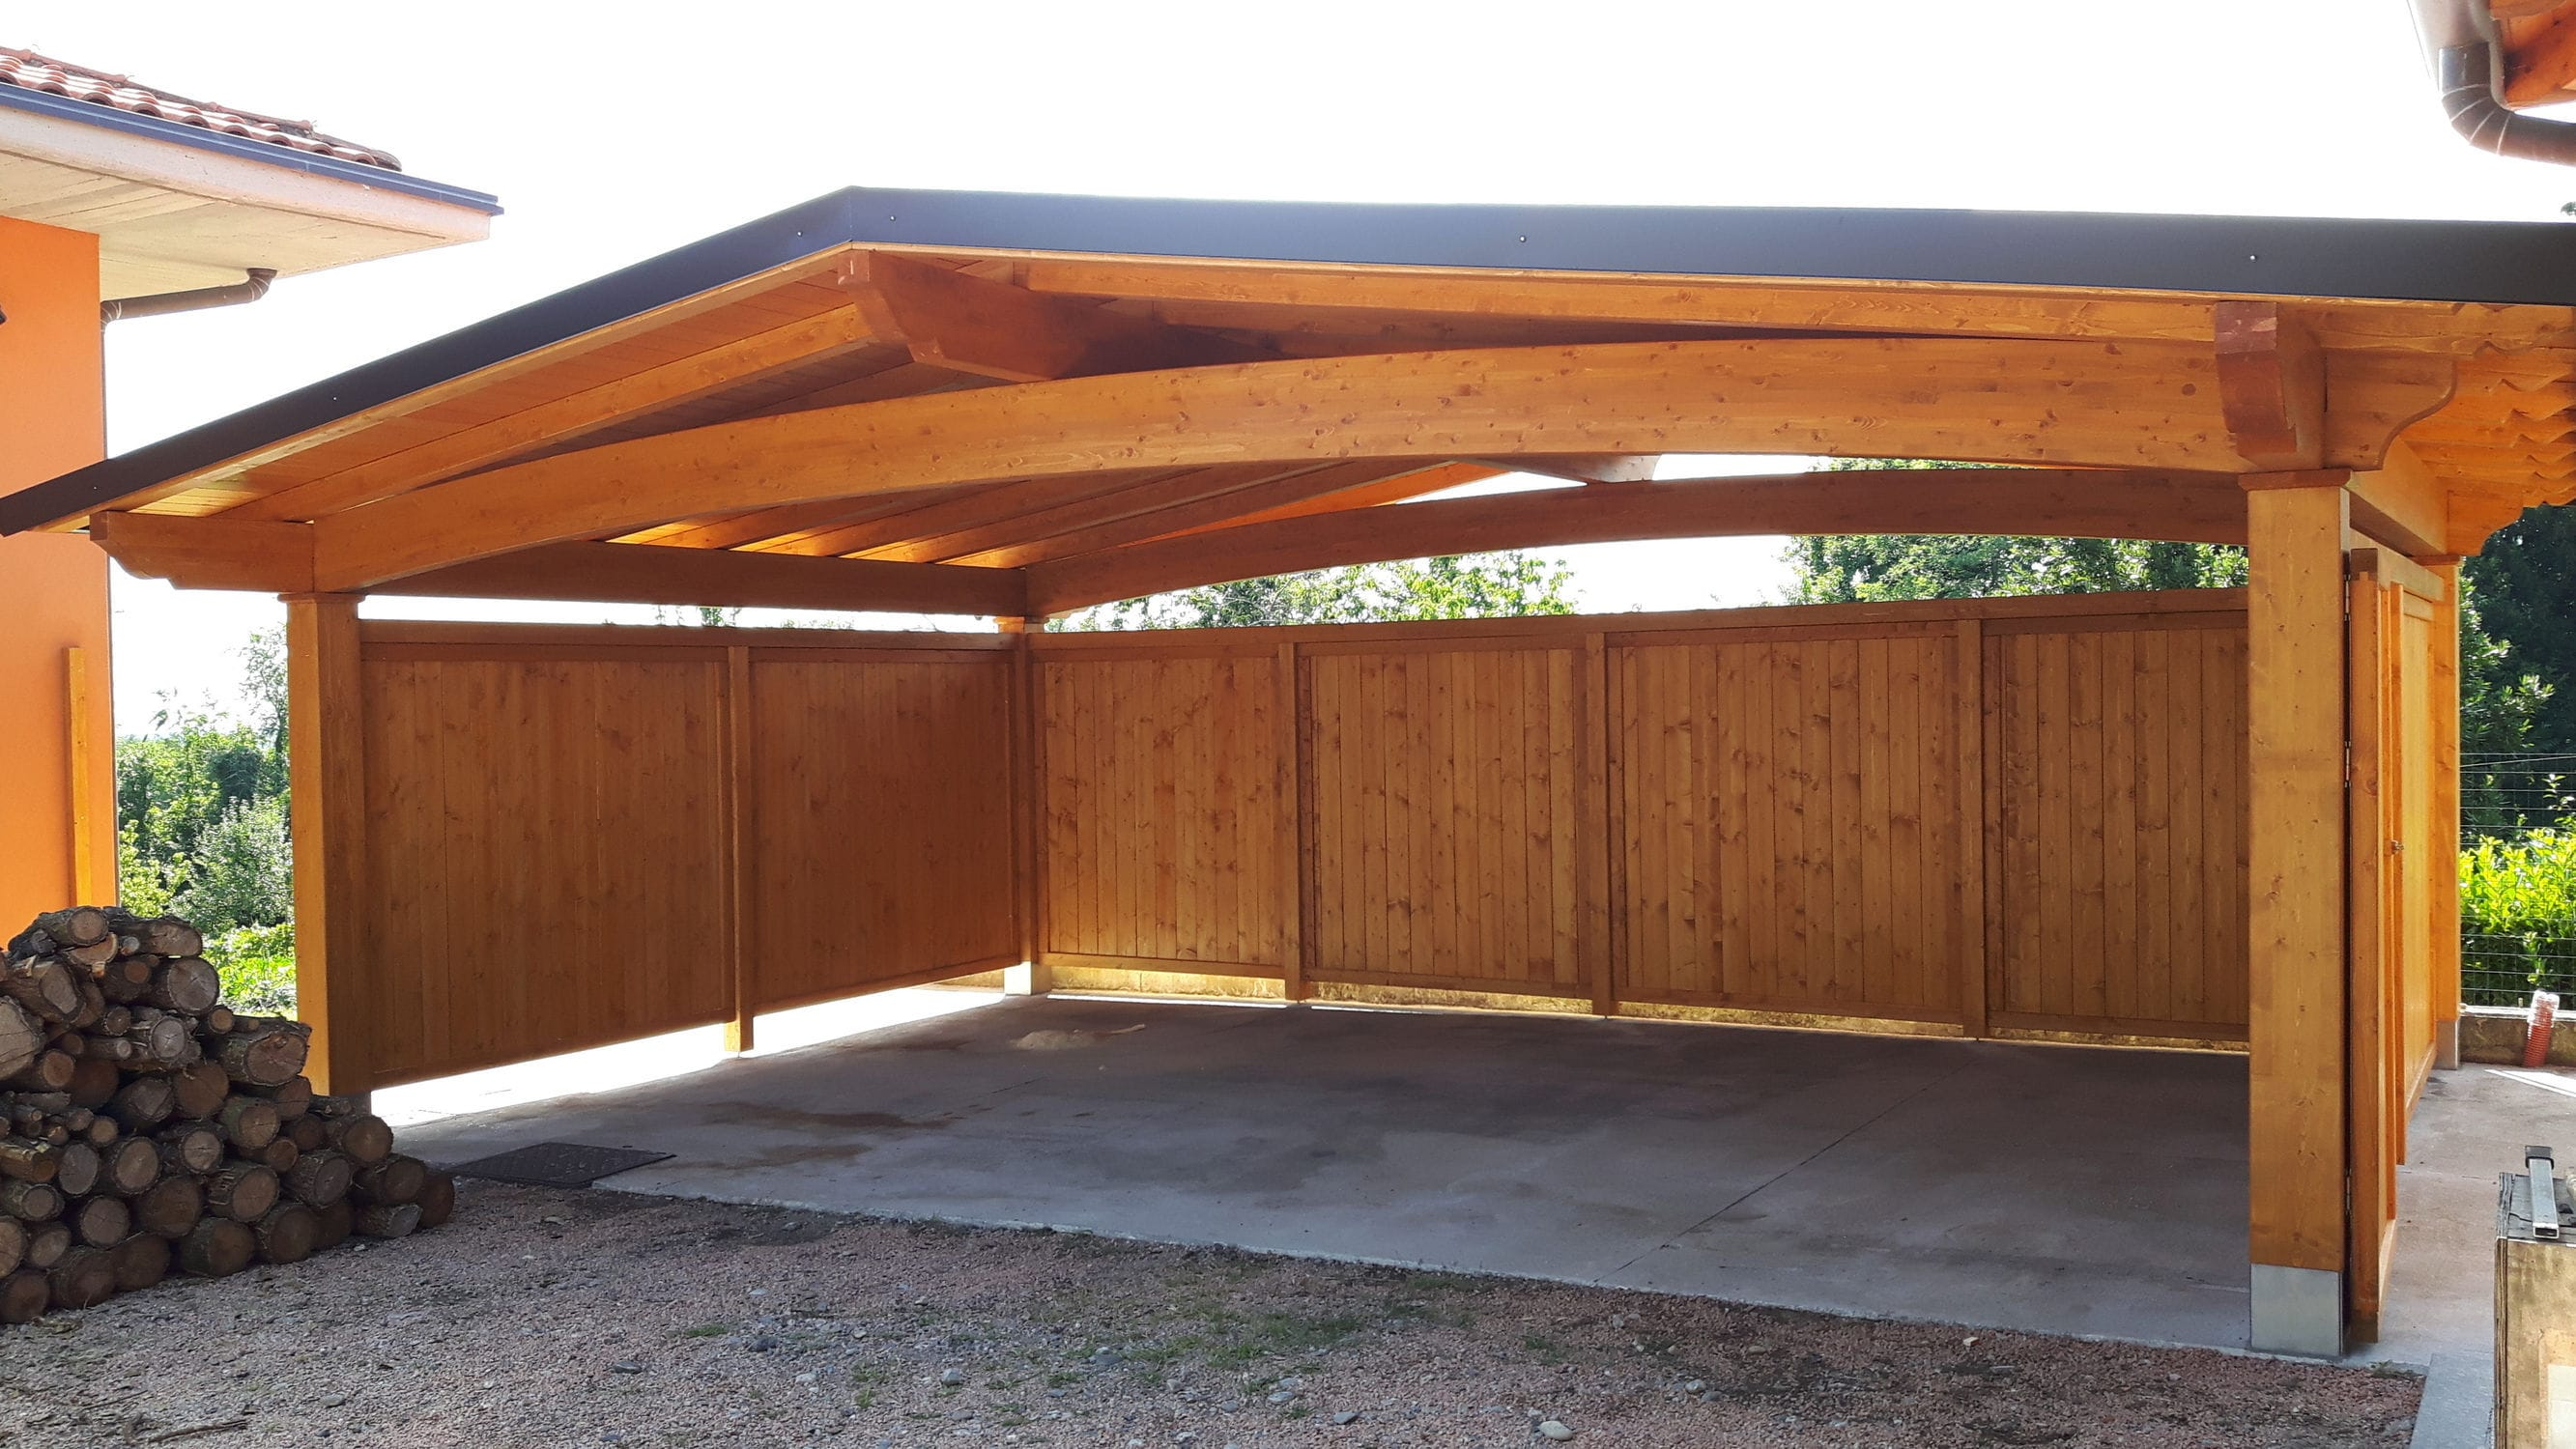 Wooden Carport Arco Proverbio Outdoor Design